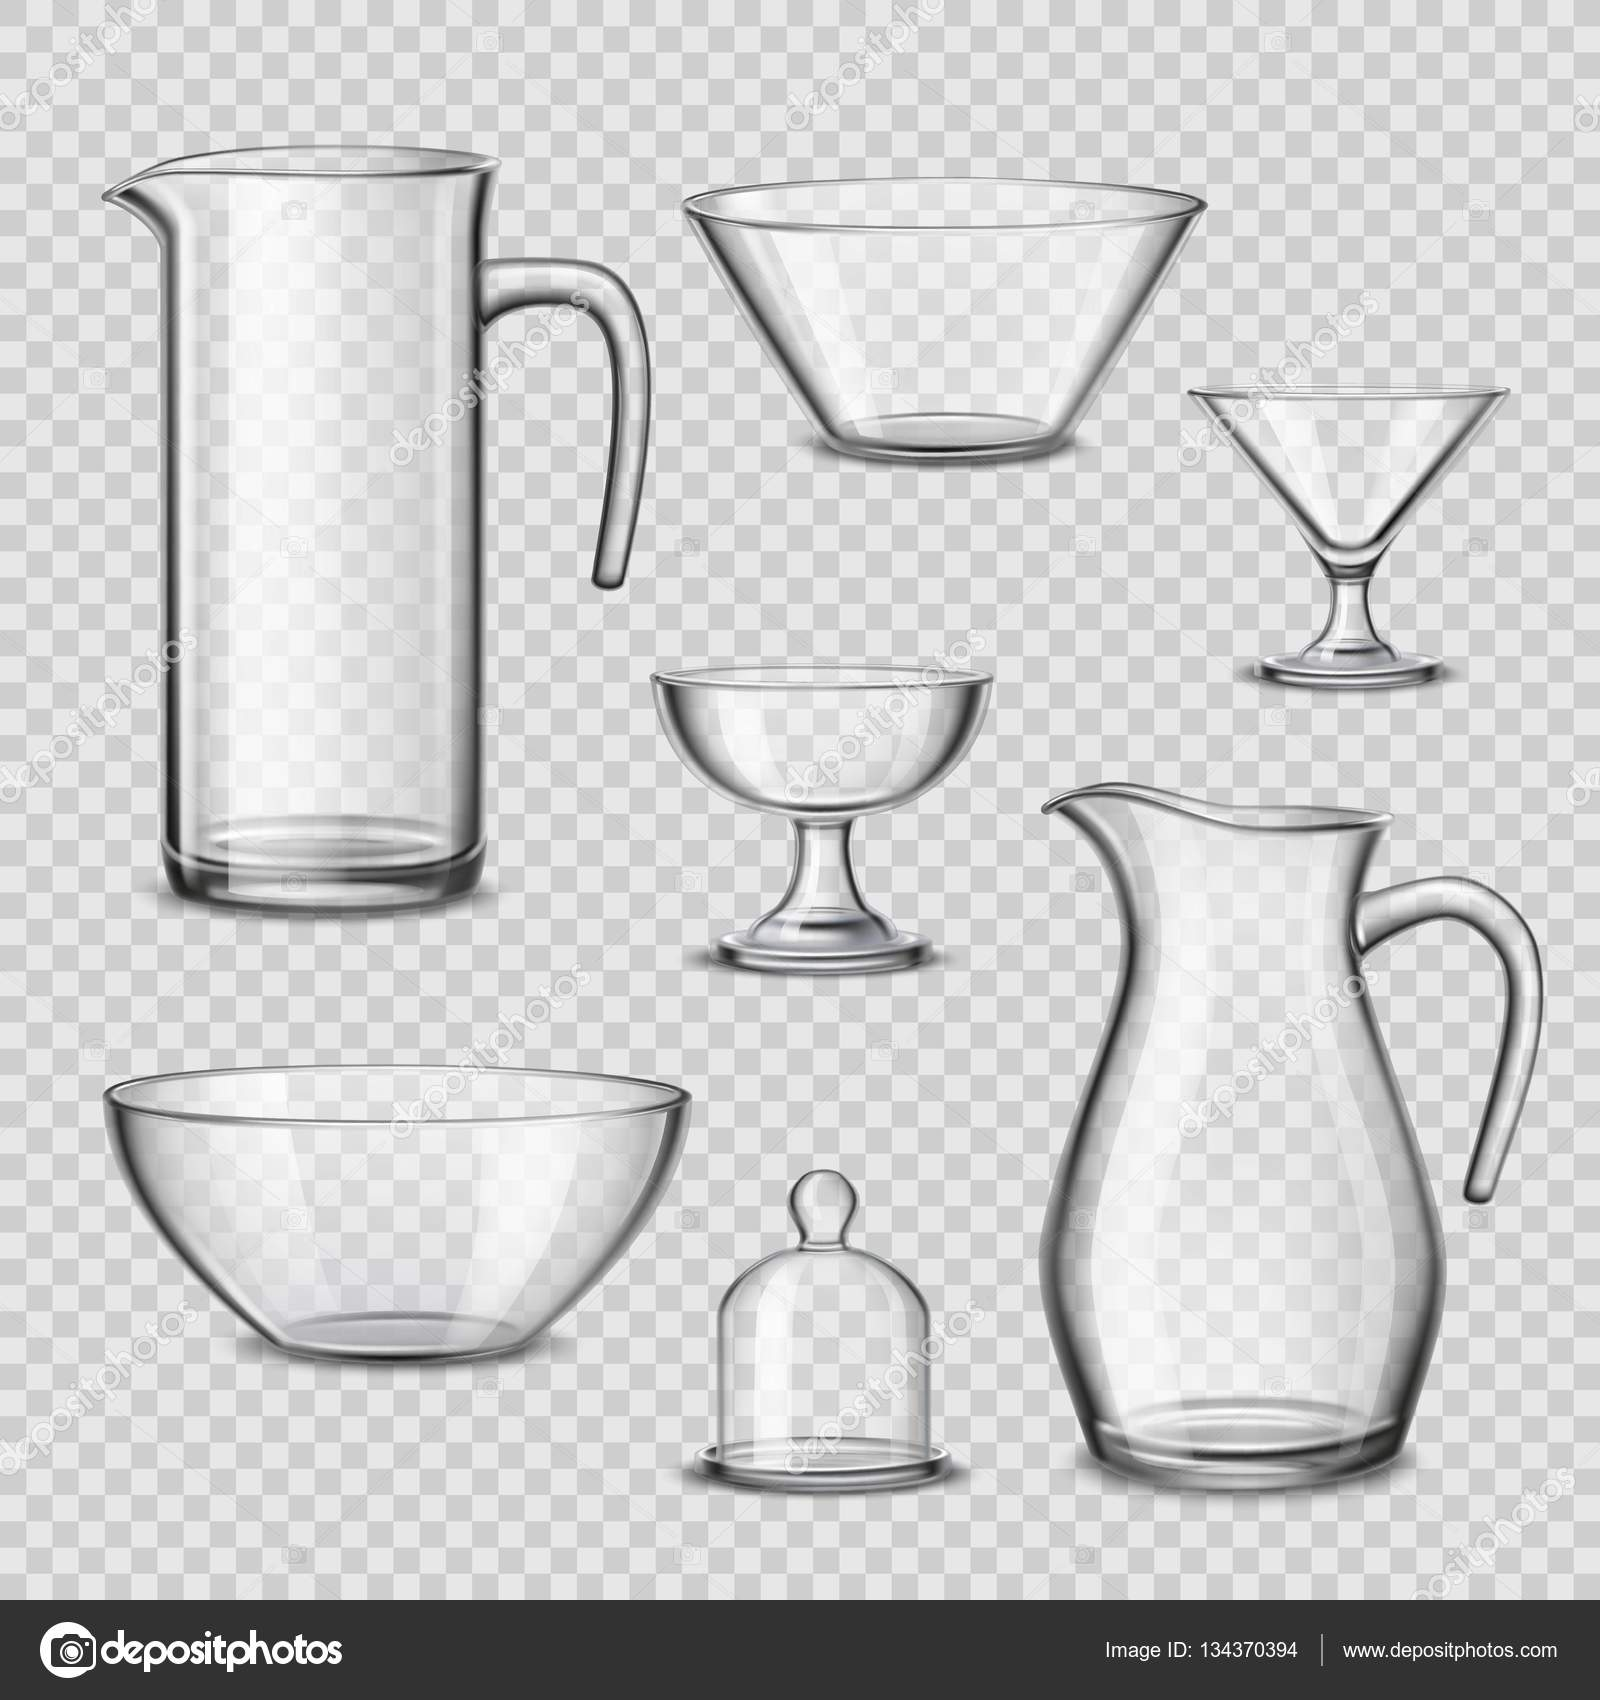 Glass kitchen utensils - Realistic Glassware Kitchen Utensils Transparent Background Stock Vector 134370394